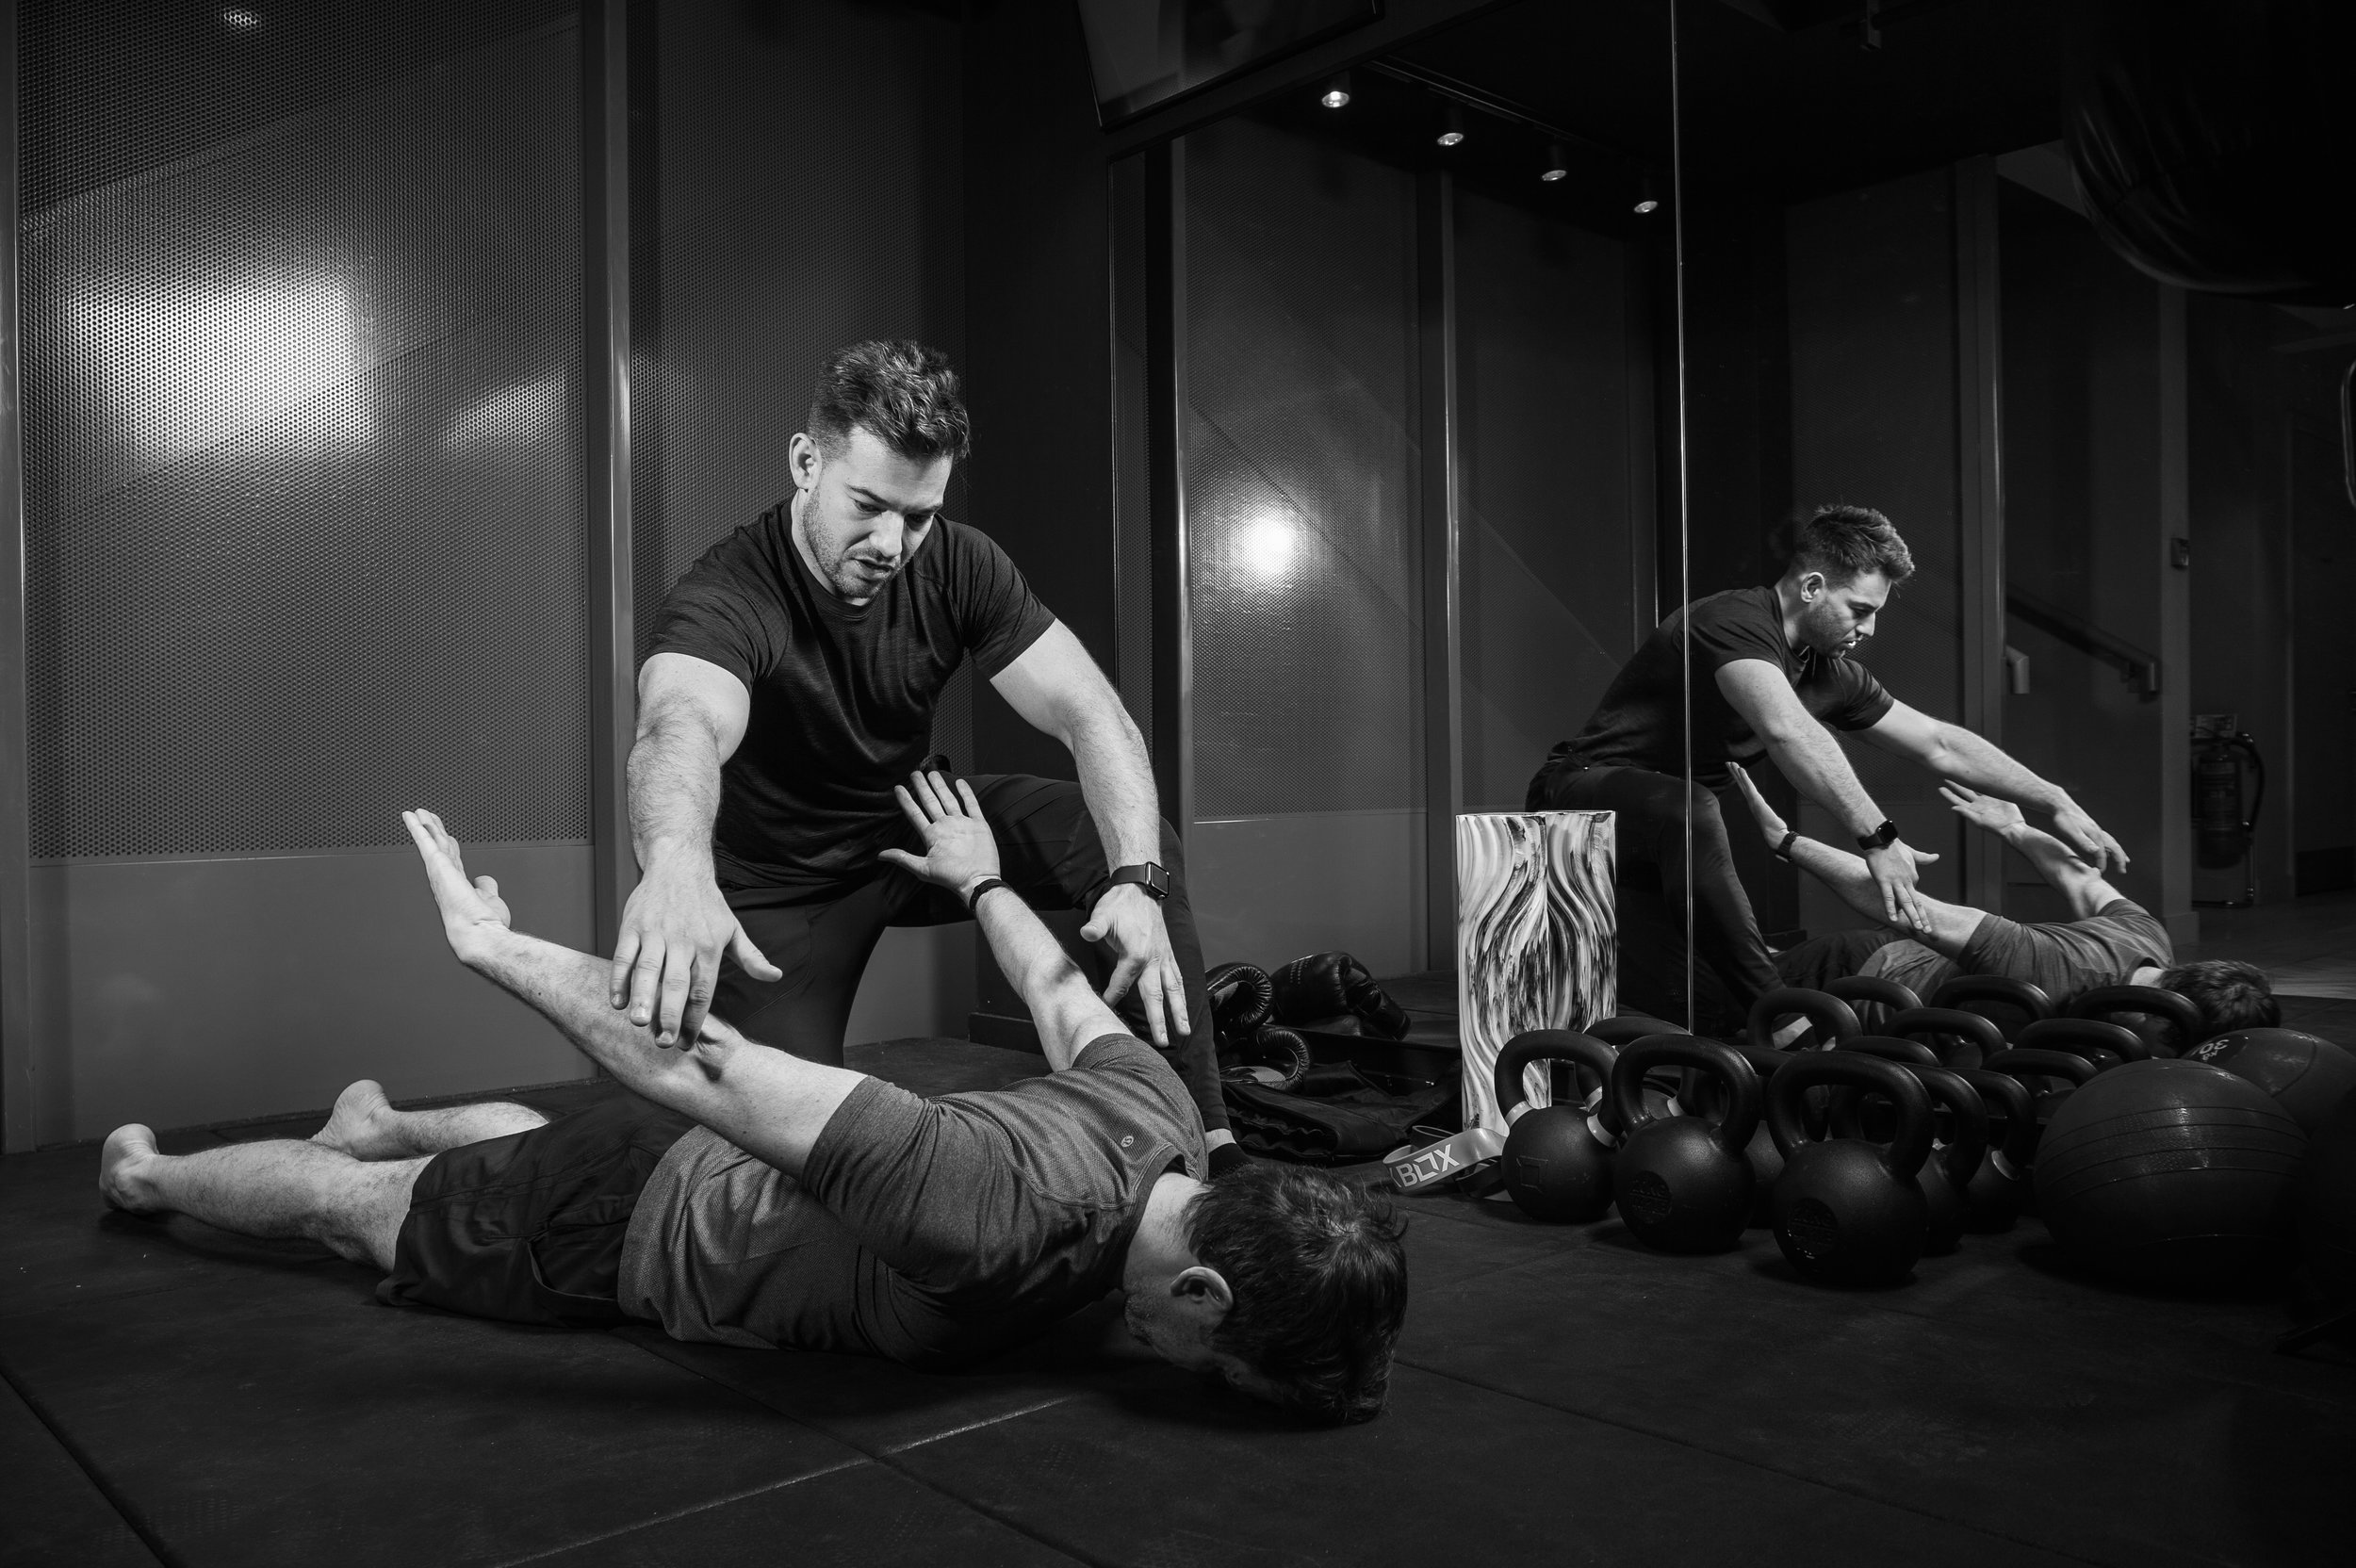 Whether you need injury rehabilitation, mobility training or your goal is performance or aesthetically driven, my varied service offering can help you achieve your objectives in whatever environment you feel most comfortable - FOCUS